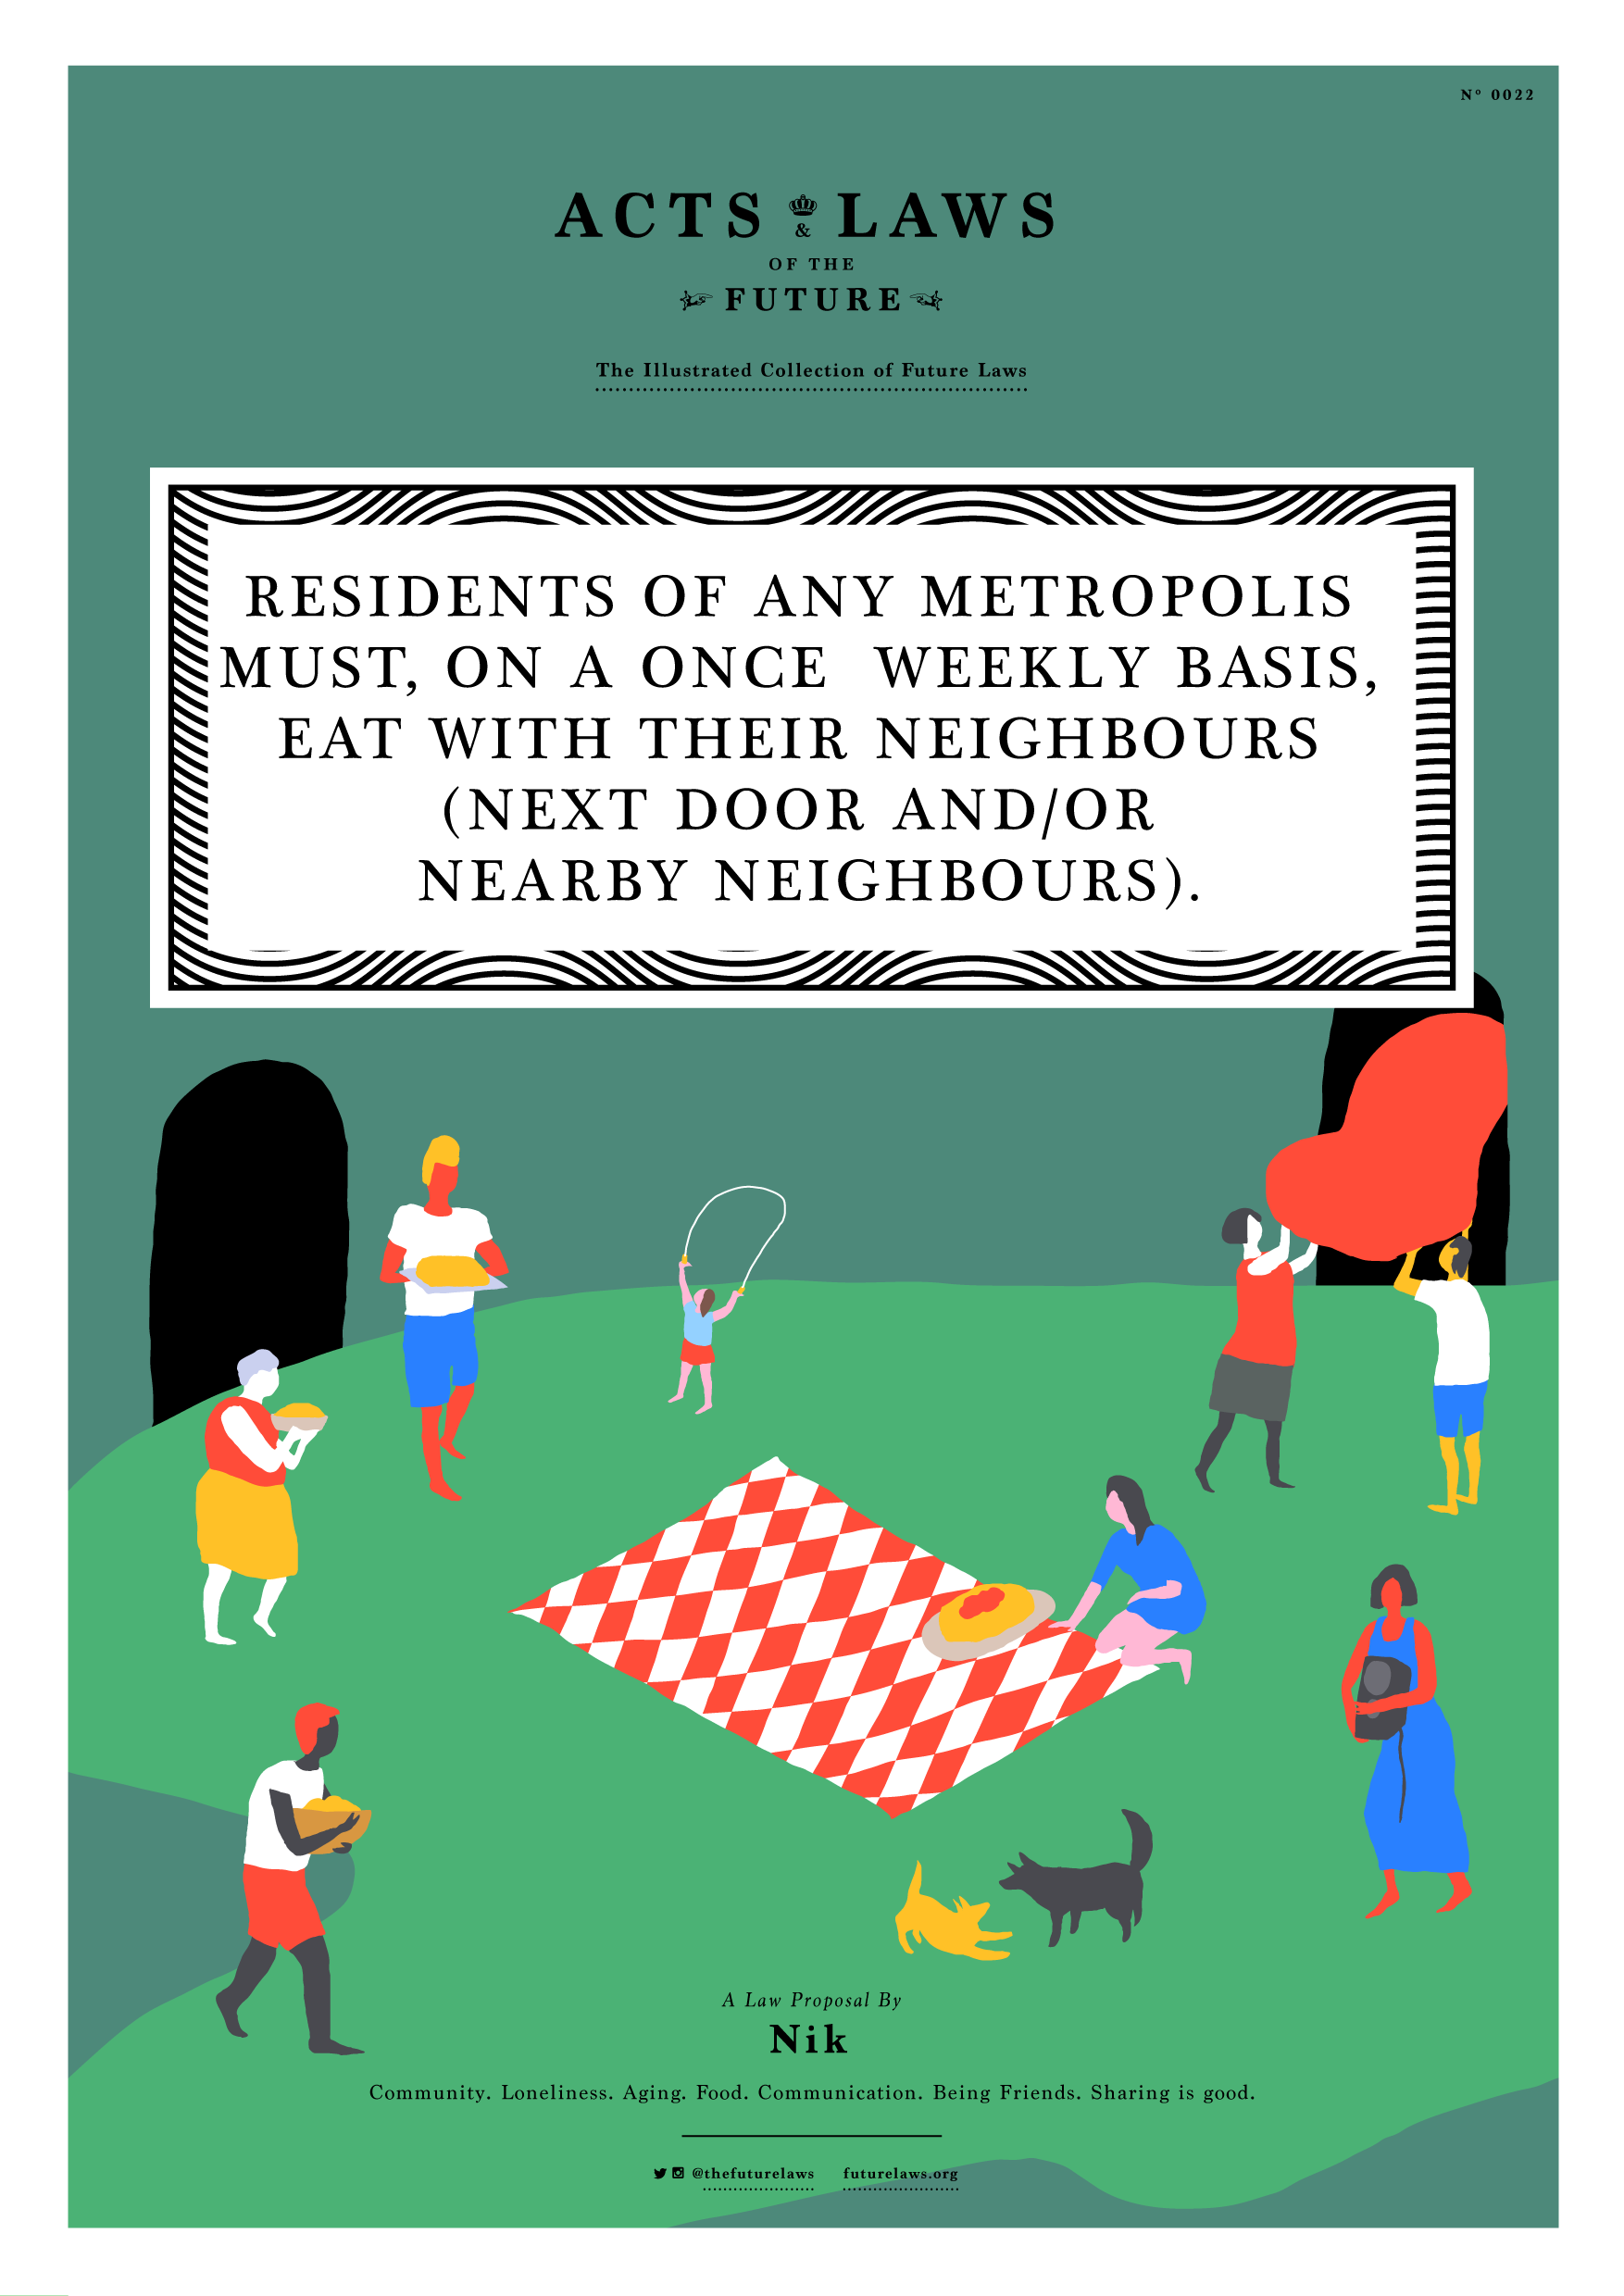 Residents of any metropolis must, on a once weekly basis, eat with their neighbours (next door and/or nearby neighbours).